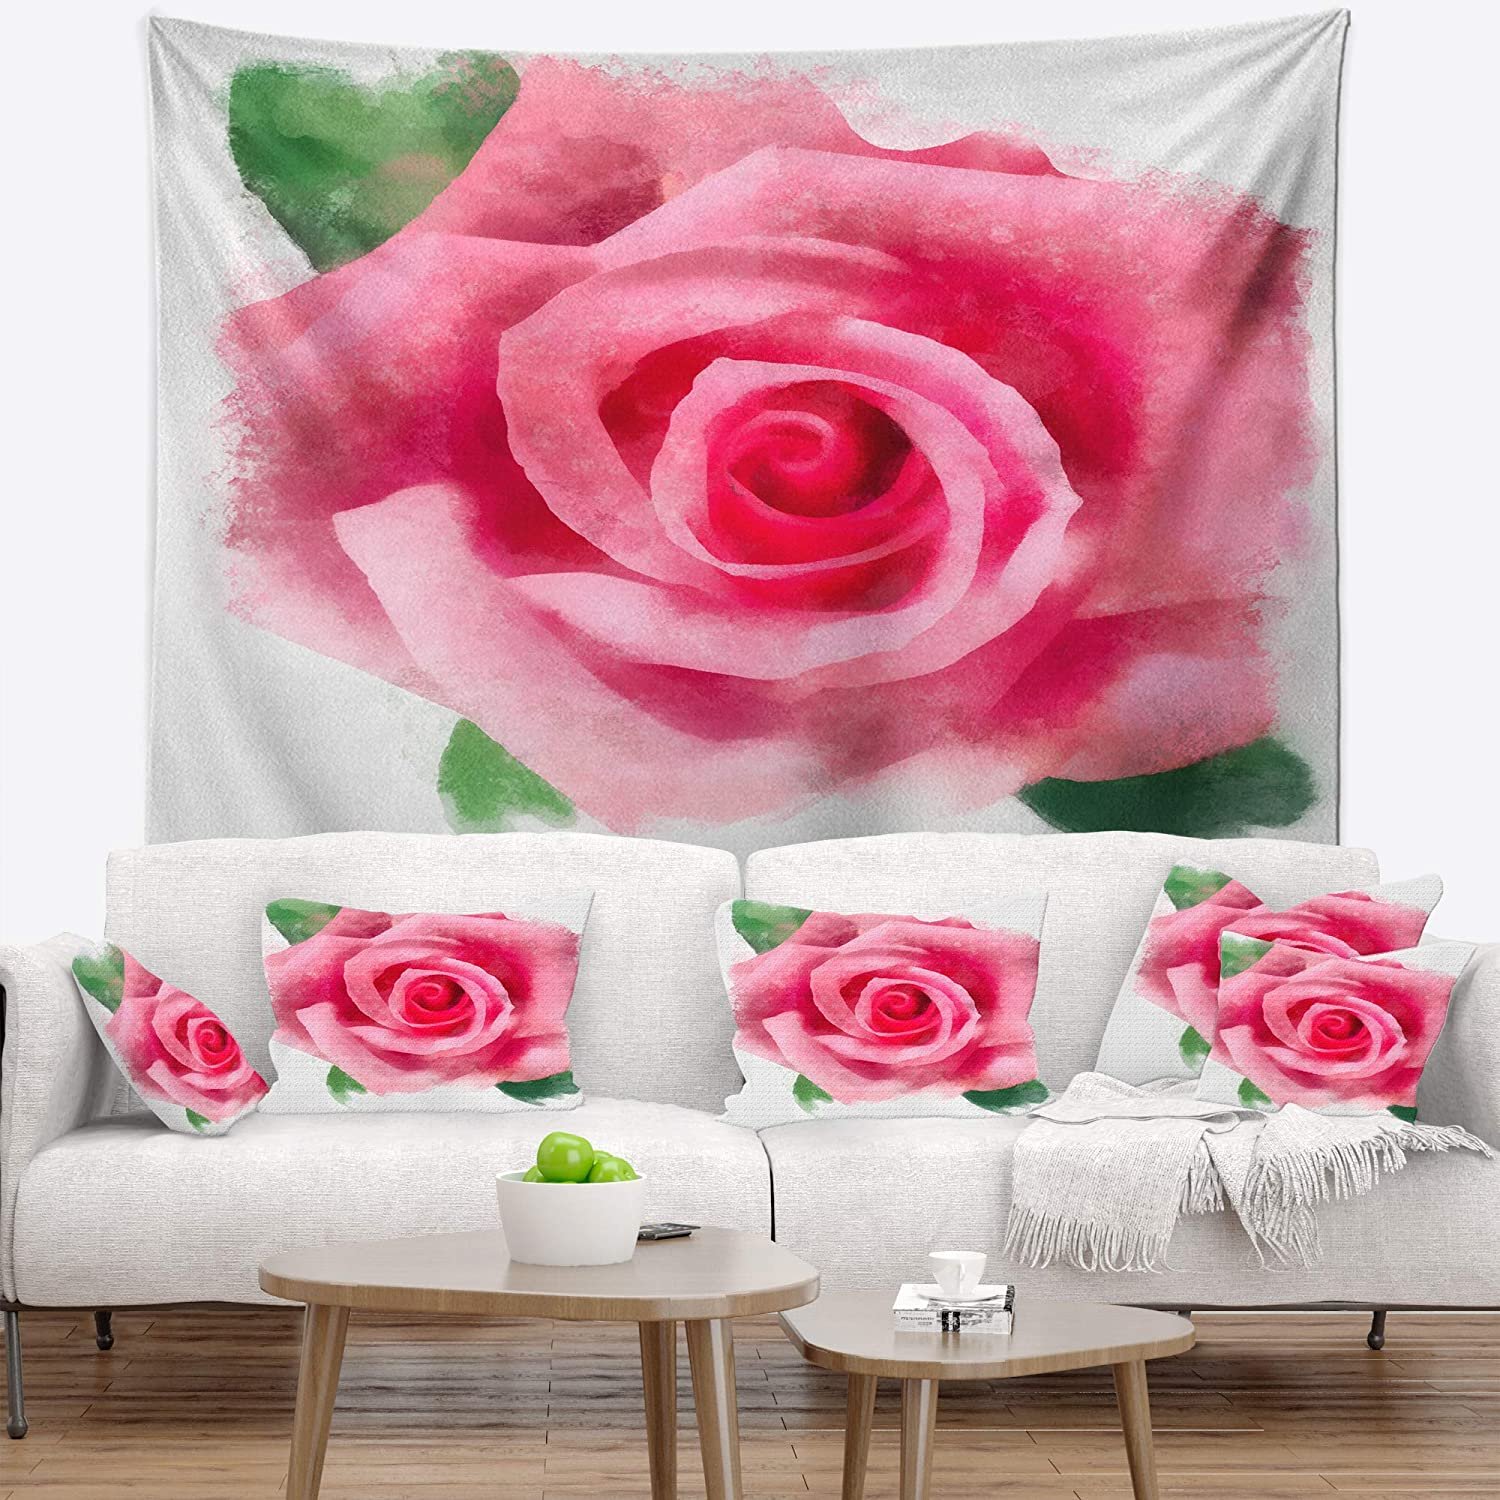 Created On Lightweight Polyester Fabric x 39 in 32 in Designart TAP13561-32-39  Big Pink Rose Flower with Leaves Floral Blanket D/écor Art for Home and Office Wall Tapestry Medium